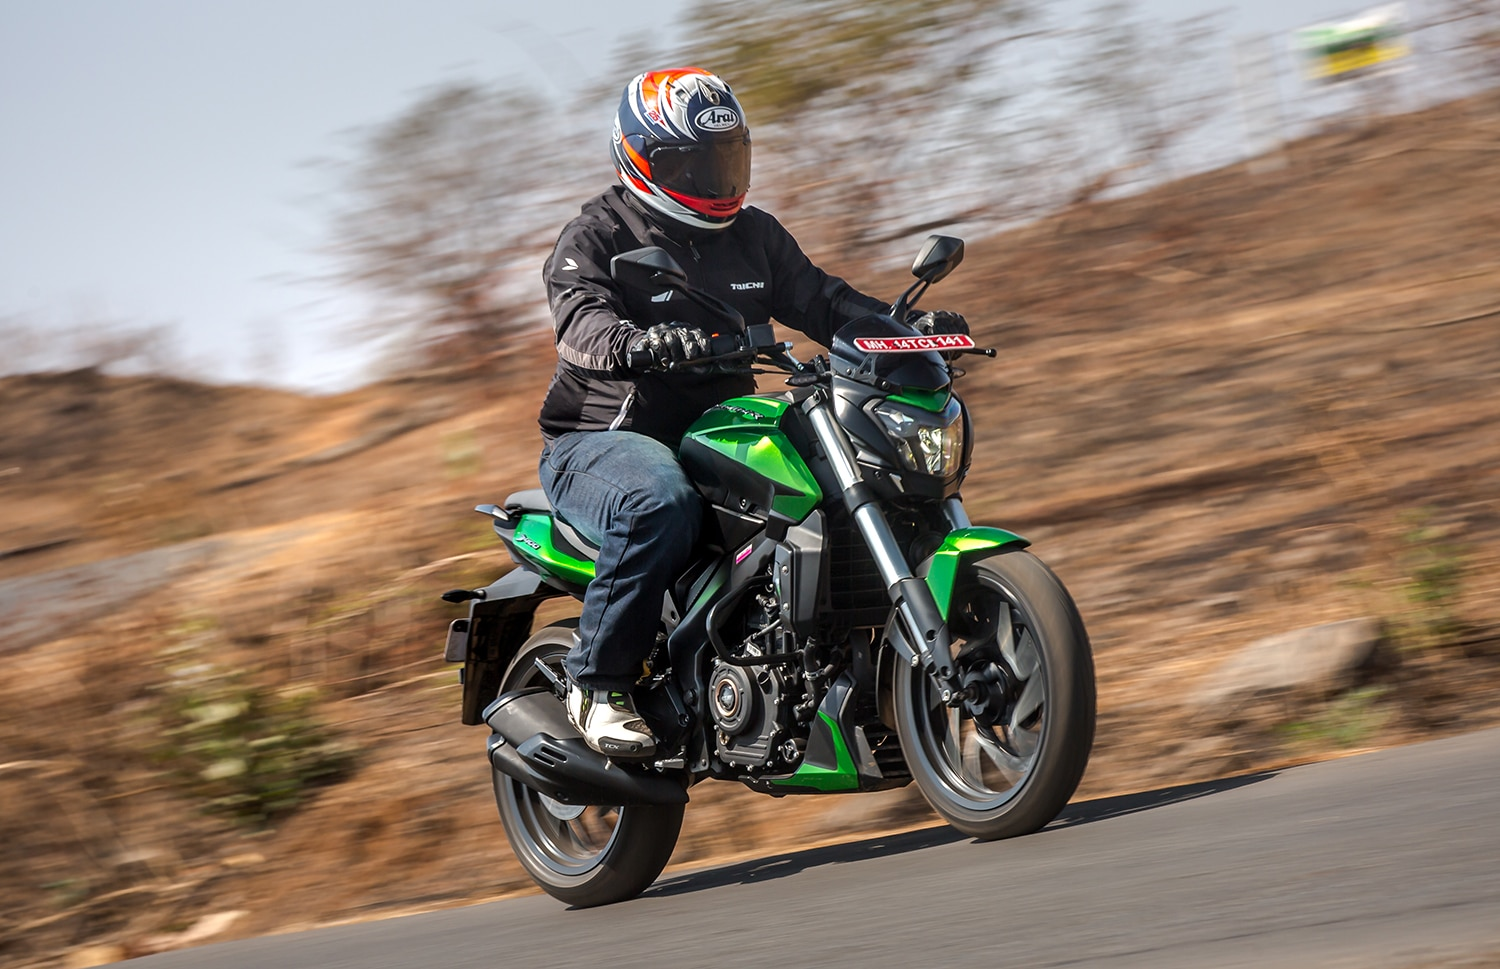 2019 Bajaj Dominar 400: First Ride Review